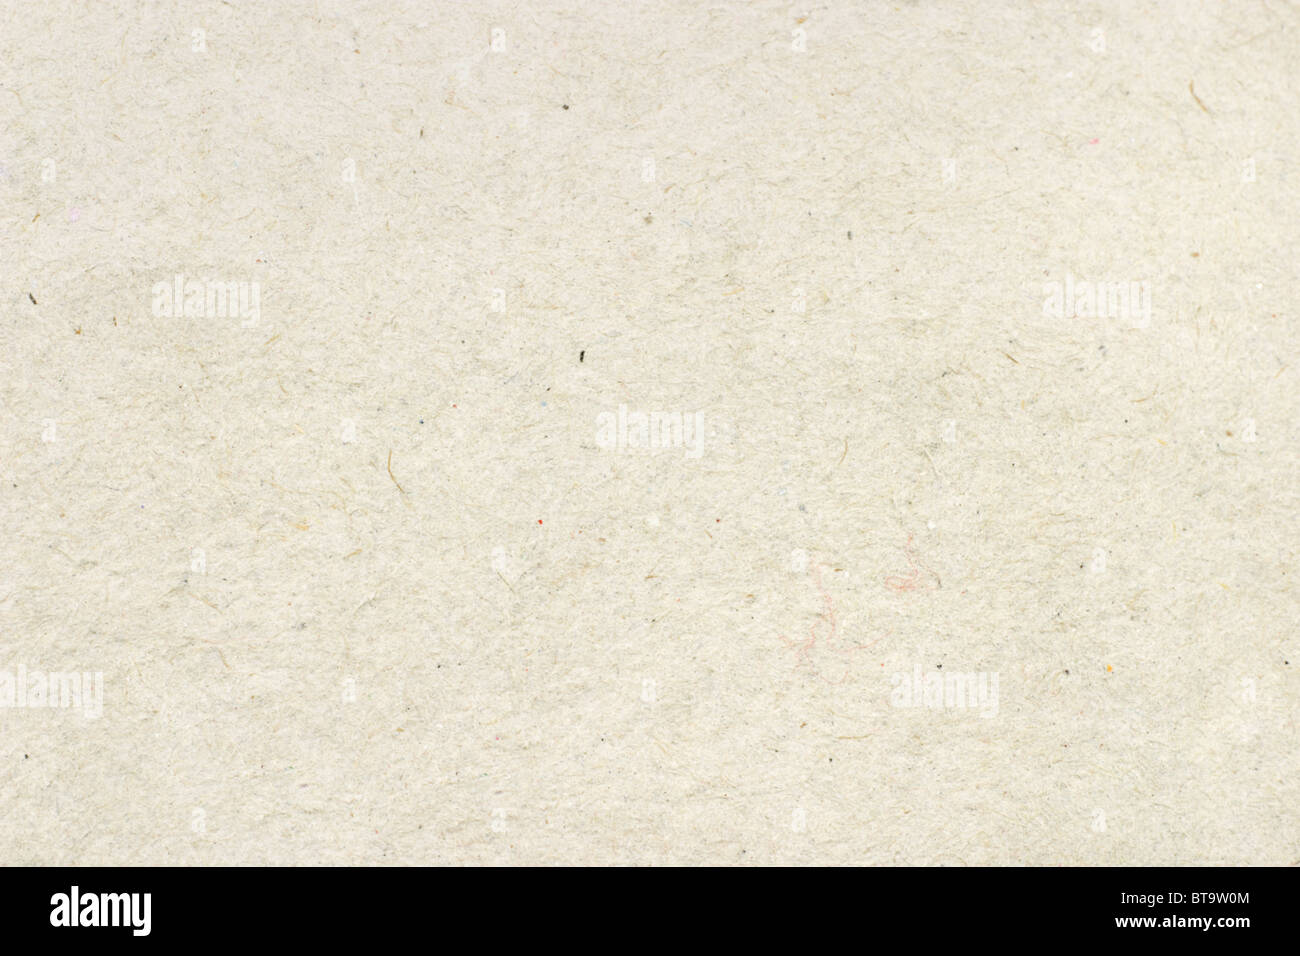 Closed up of recycled paper carton surface texture background - Stock Image